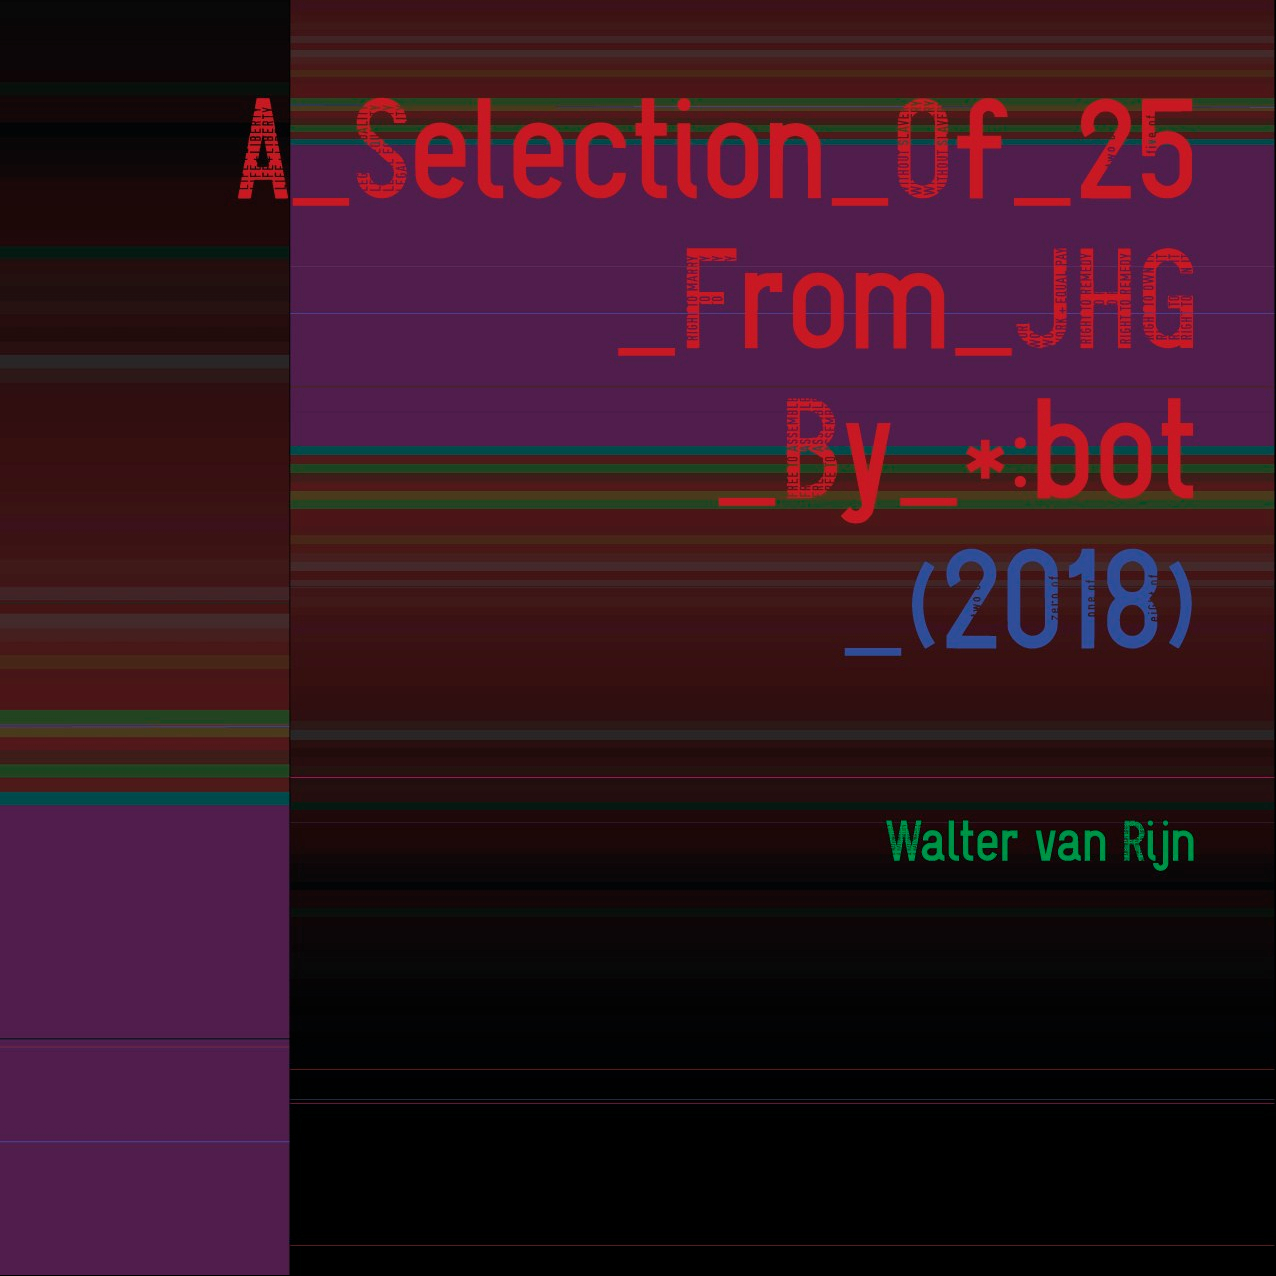 Walter van Rijn, A Selection Of 25